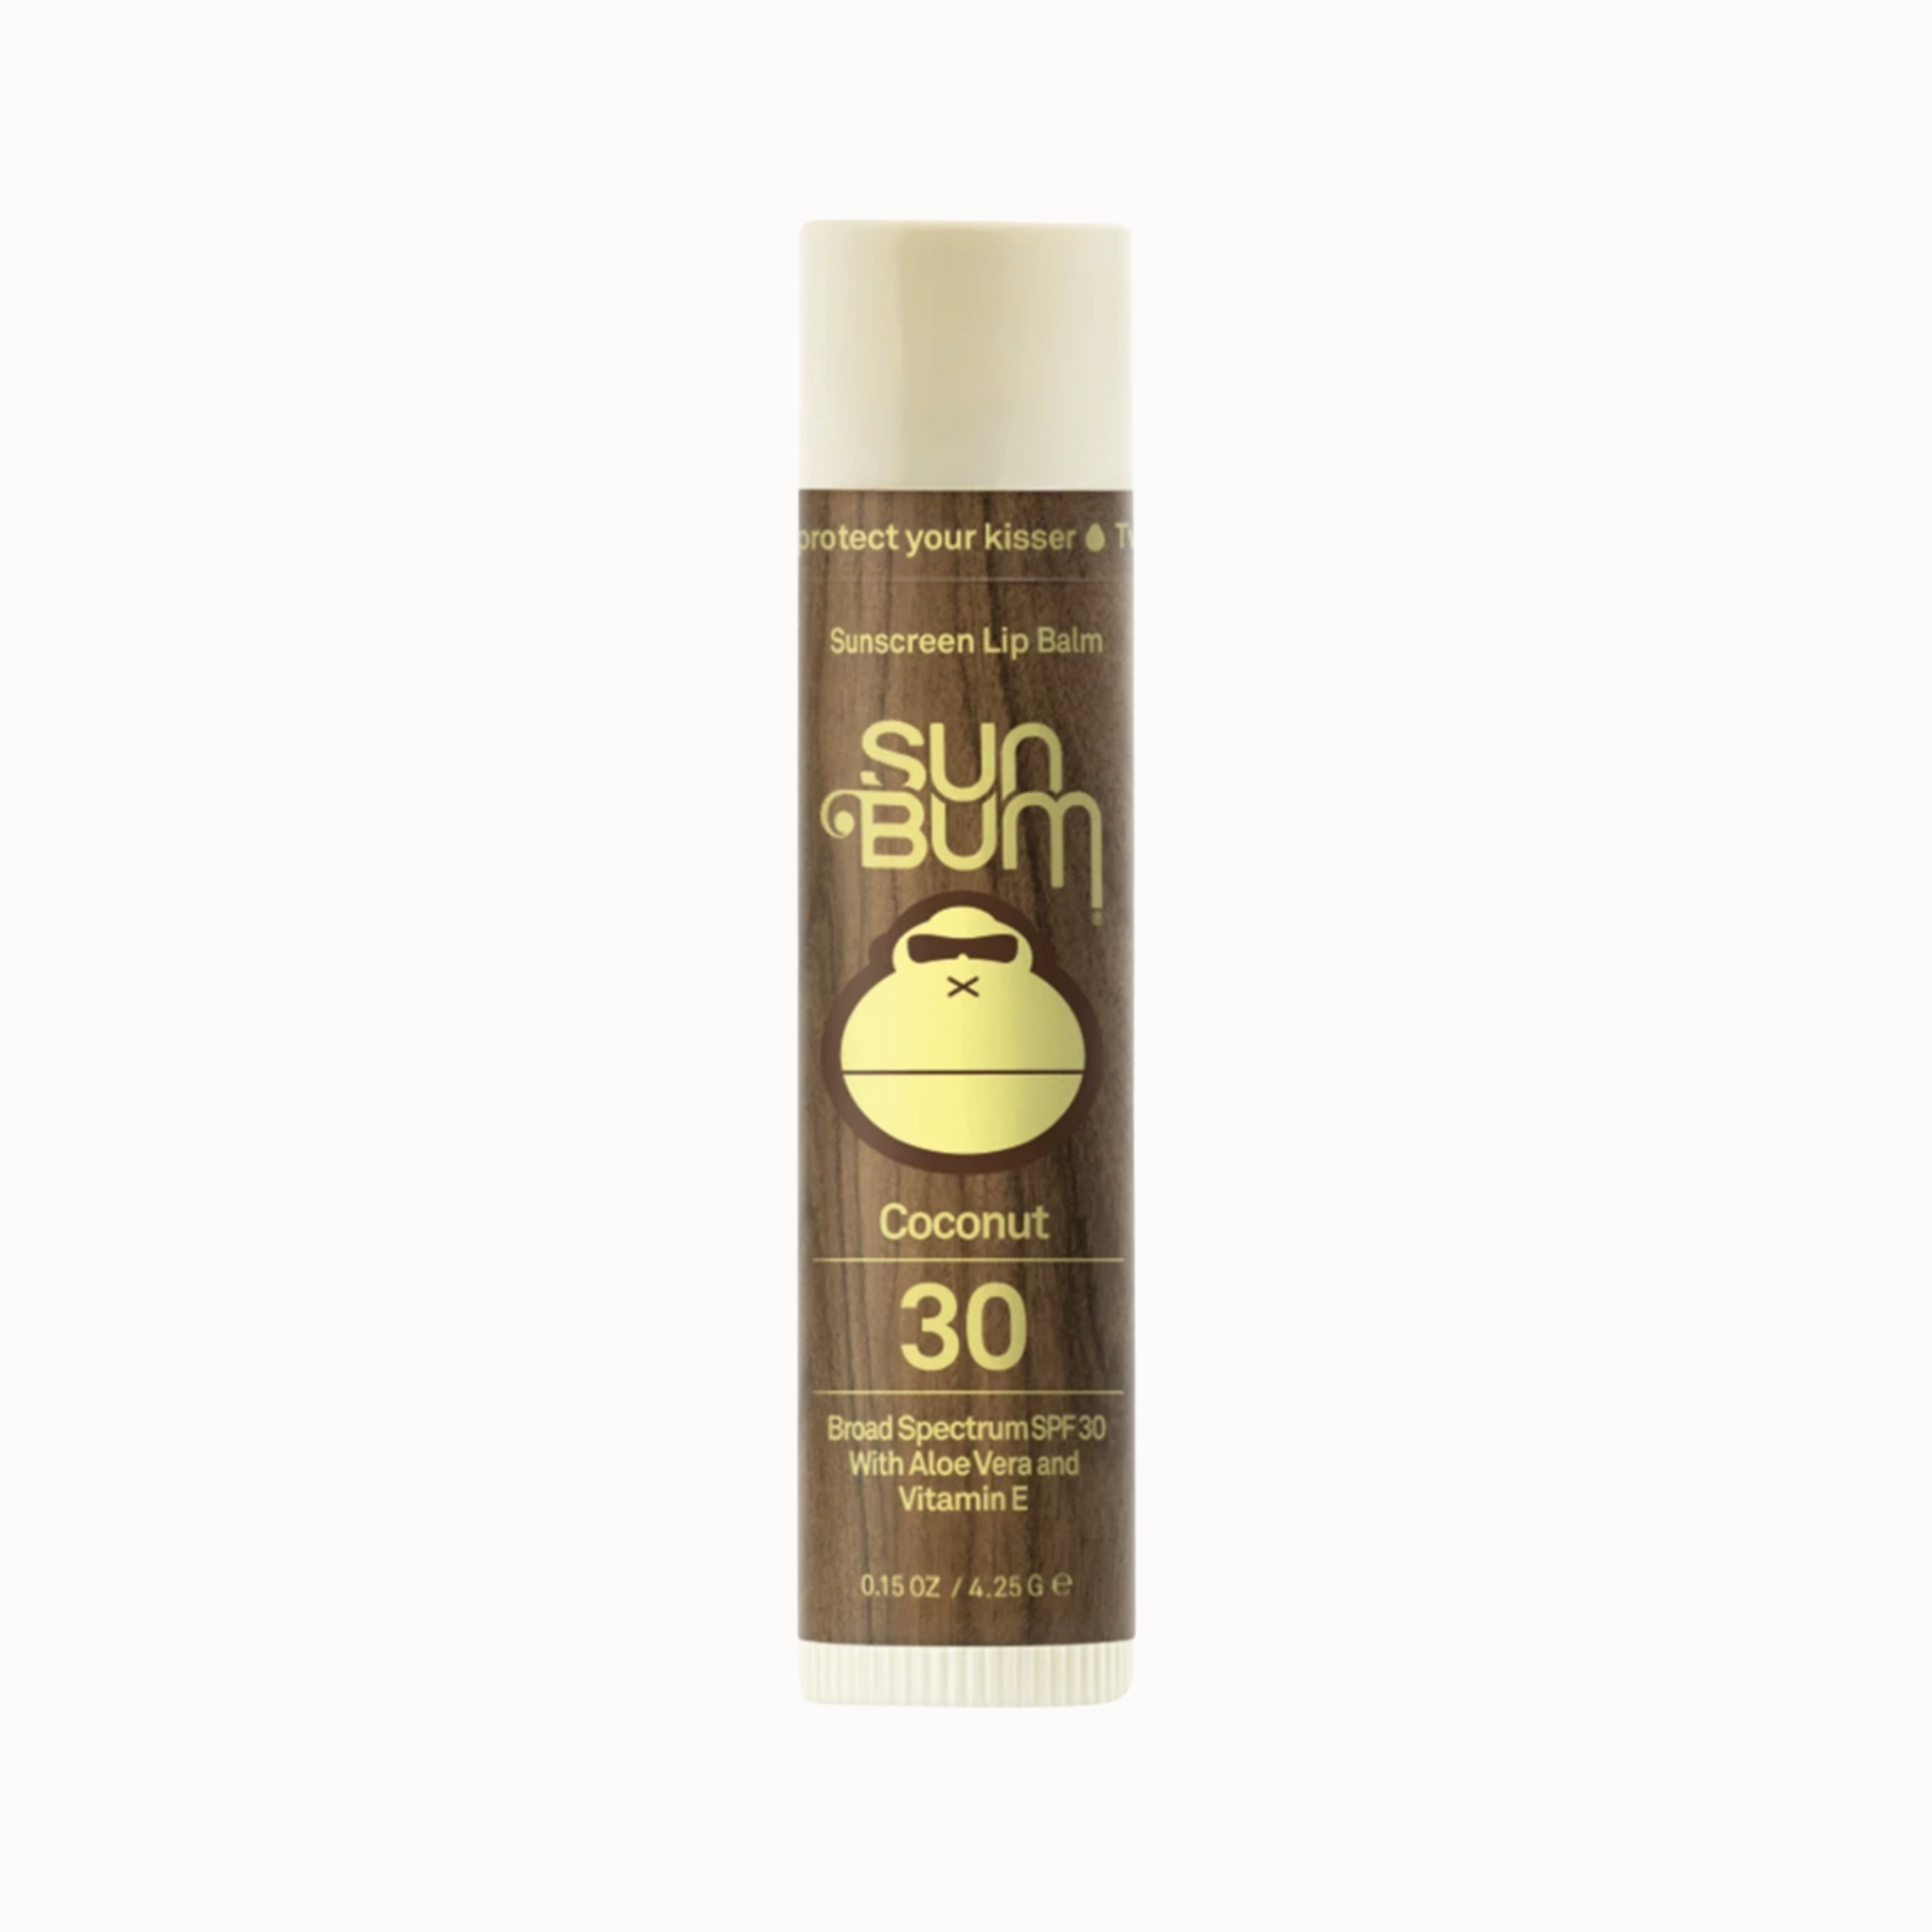 SPF 30 SUNSCREEN LIP BALM | COCONUT